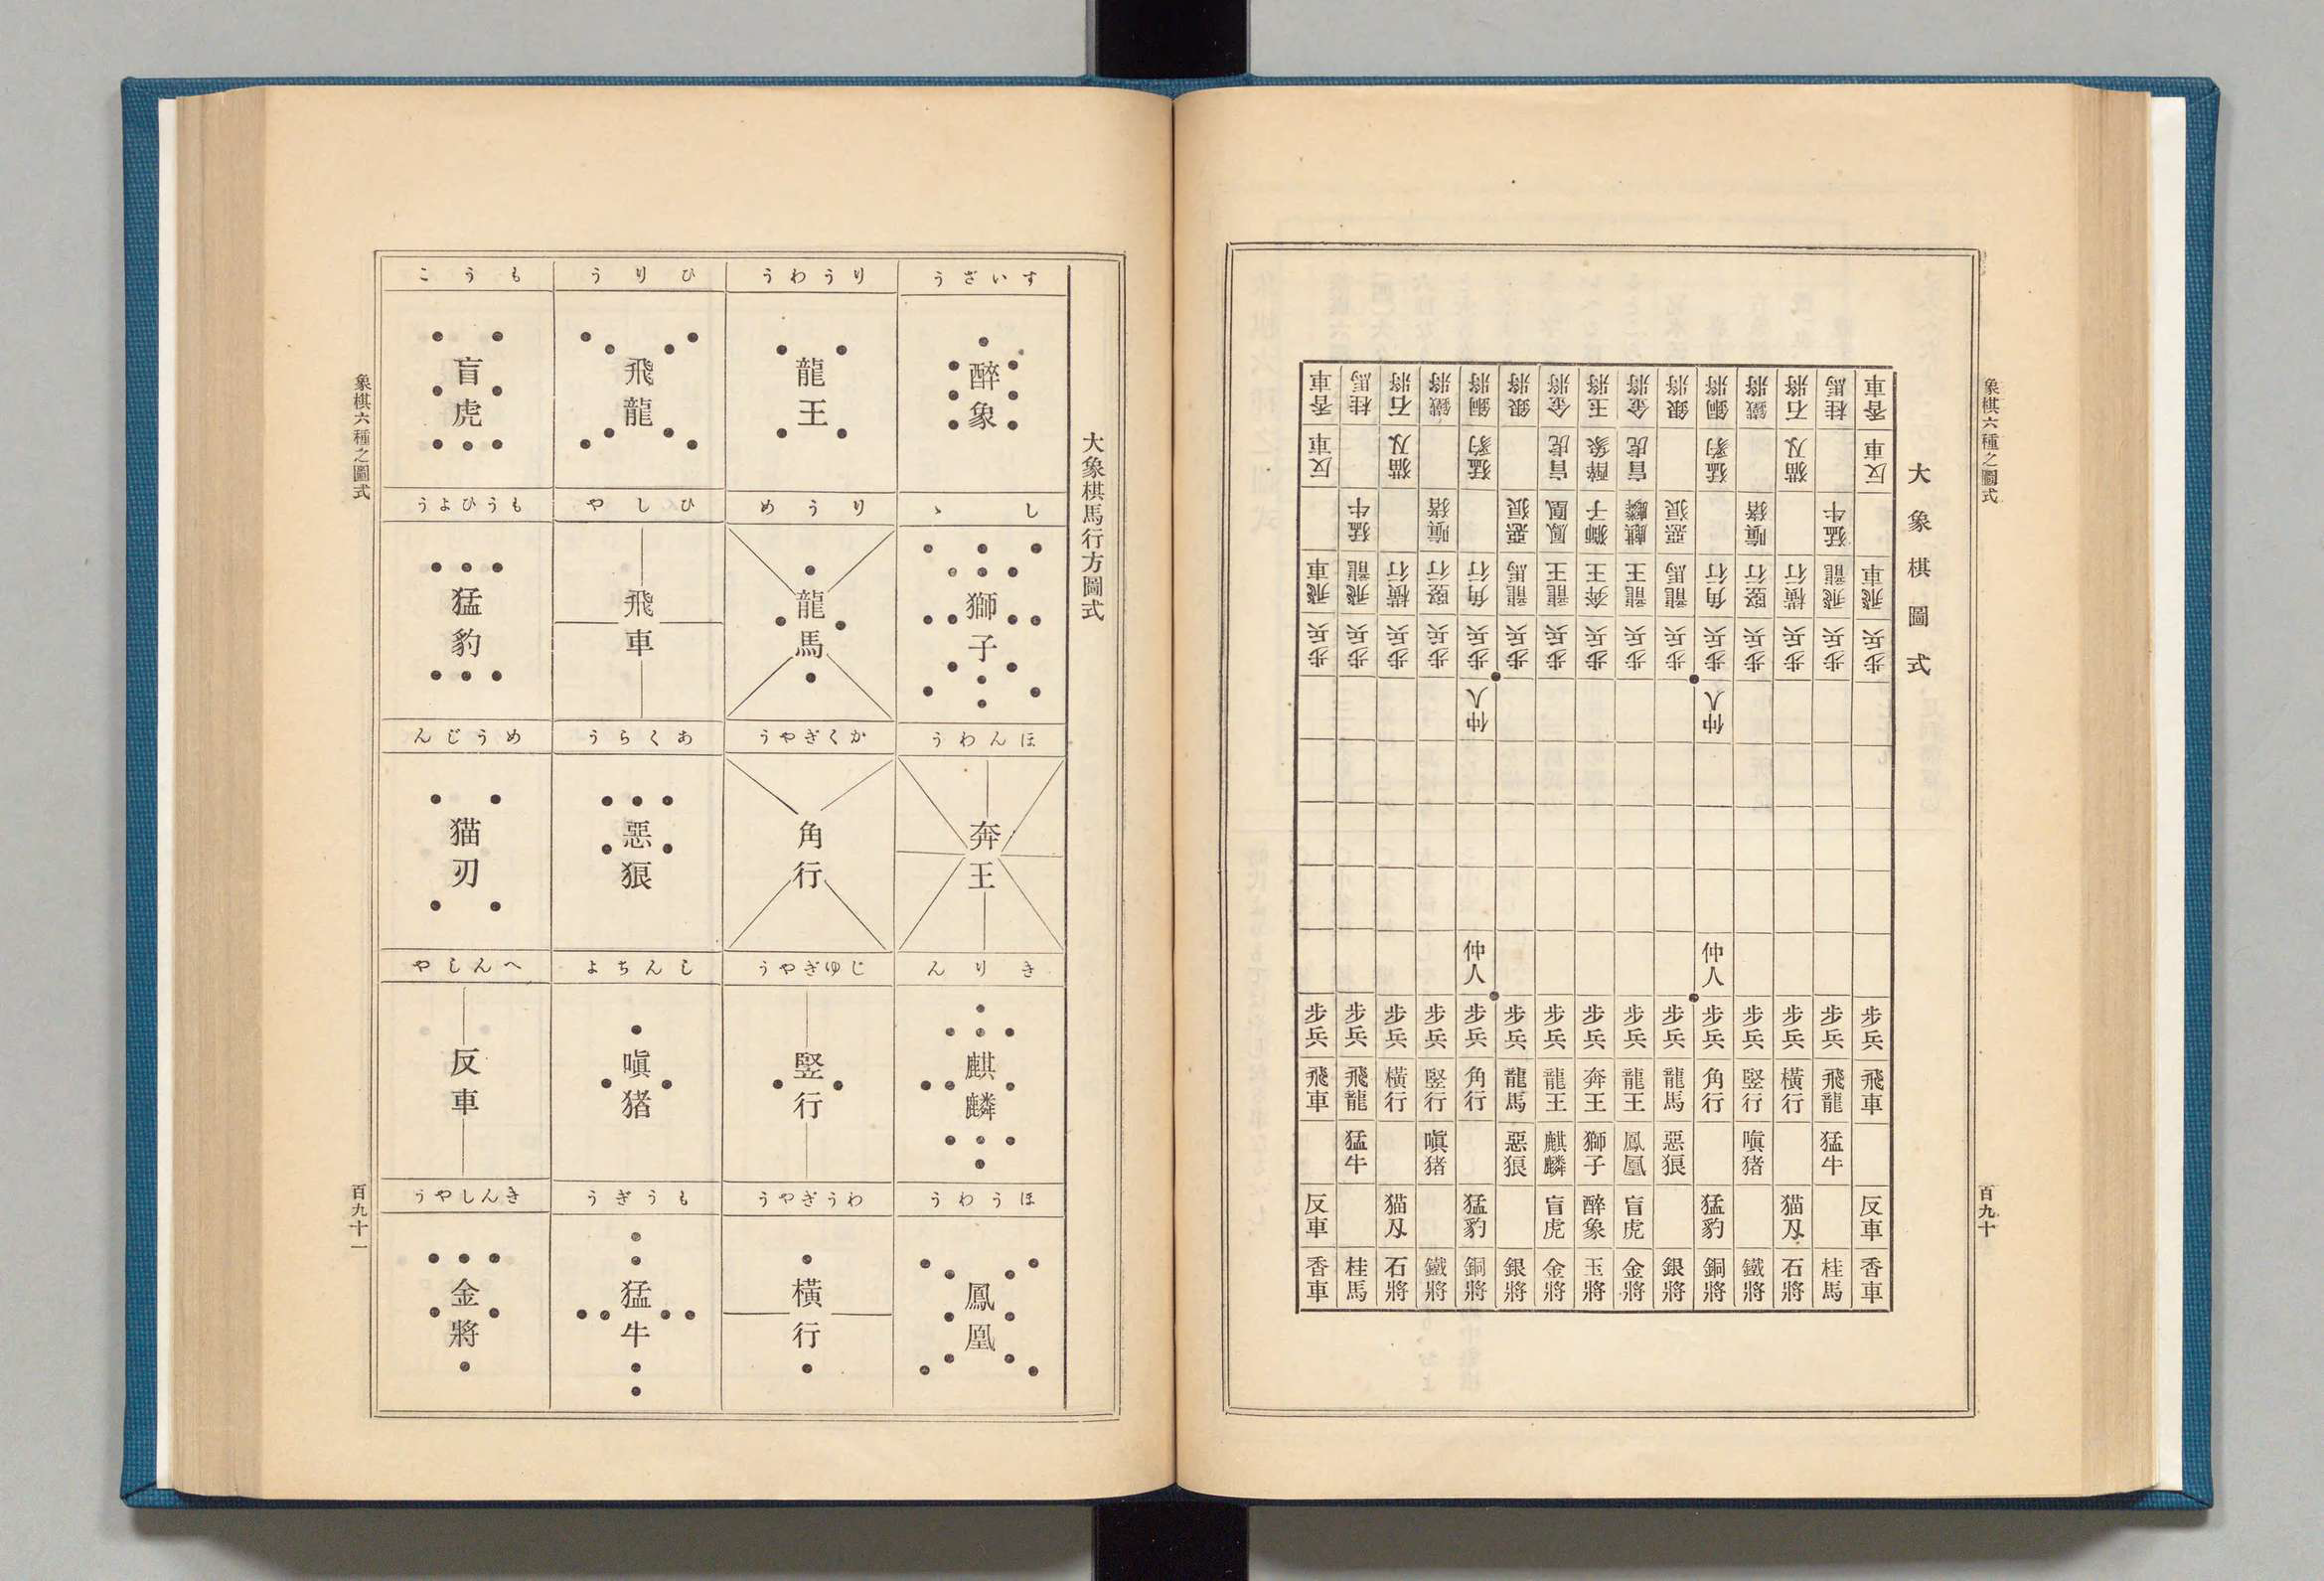 dai-shogi-book-scan